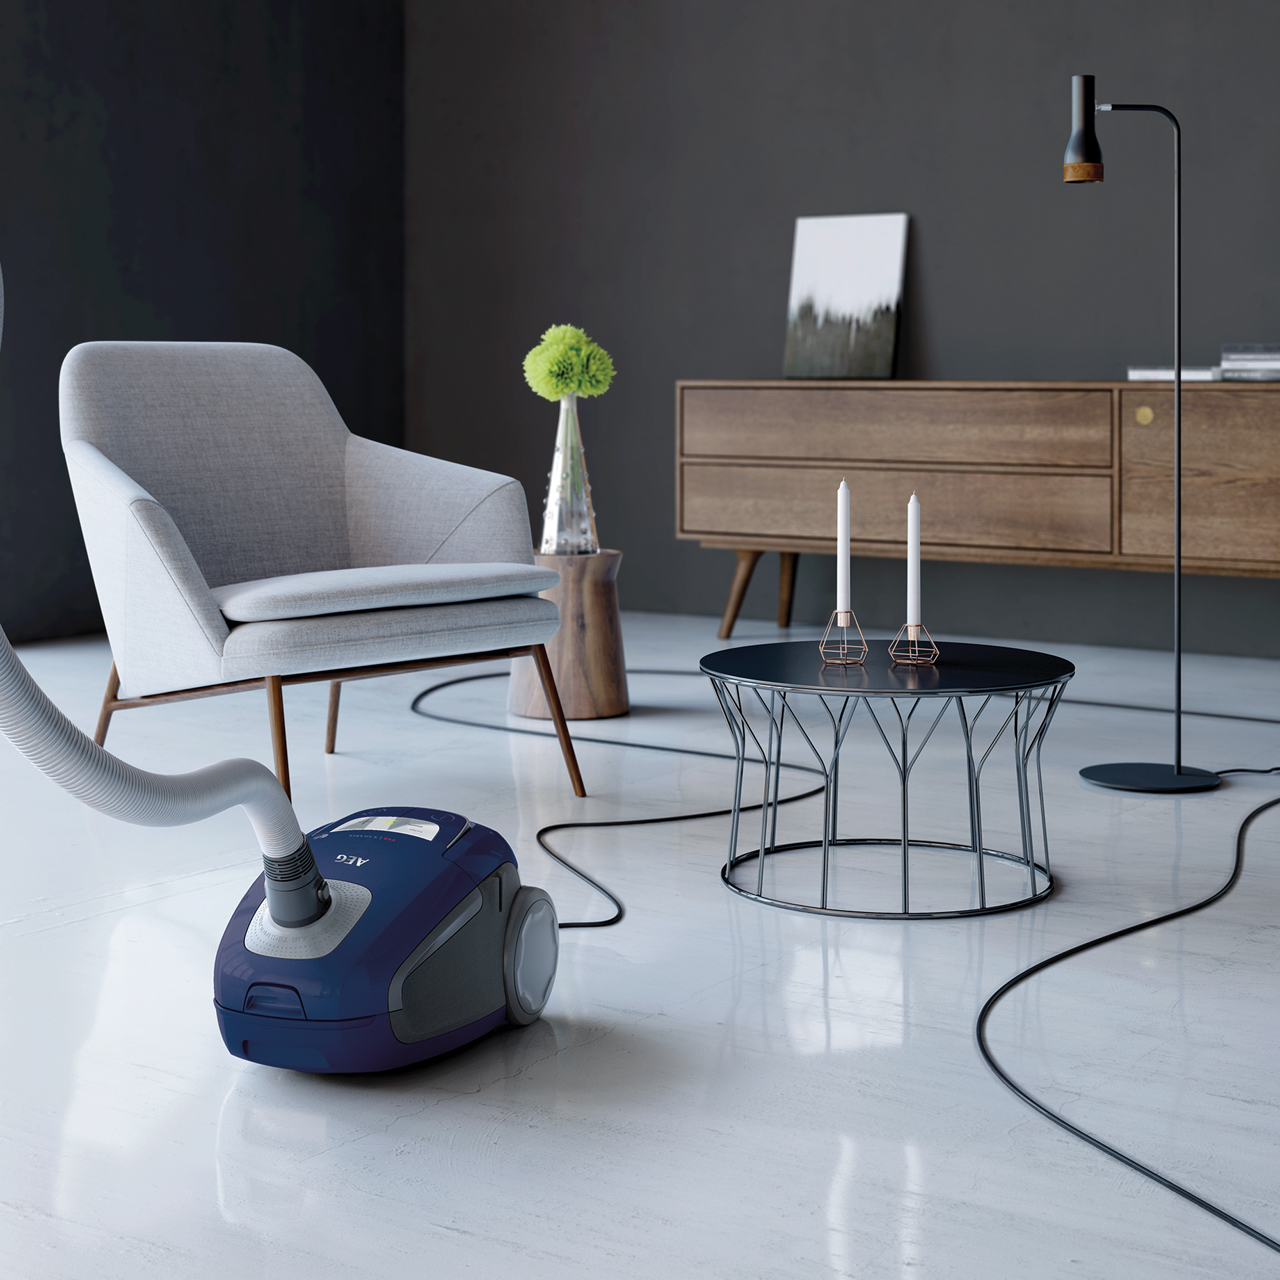 Floor Steam Cleaner B M Carpet Vidalondon